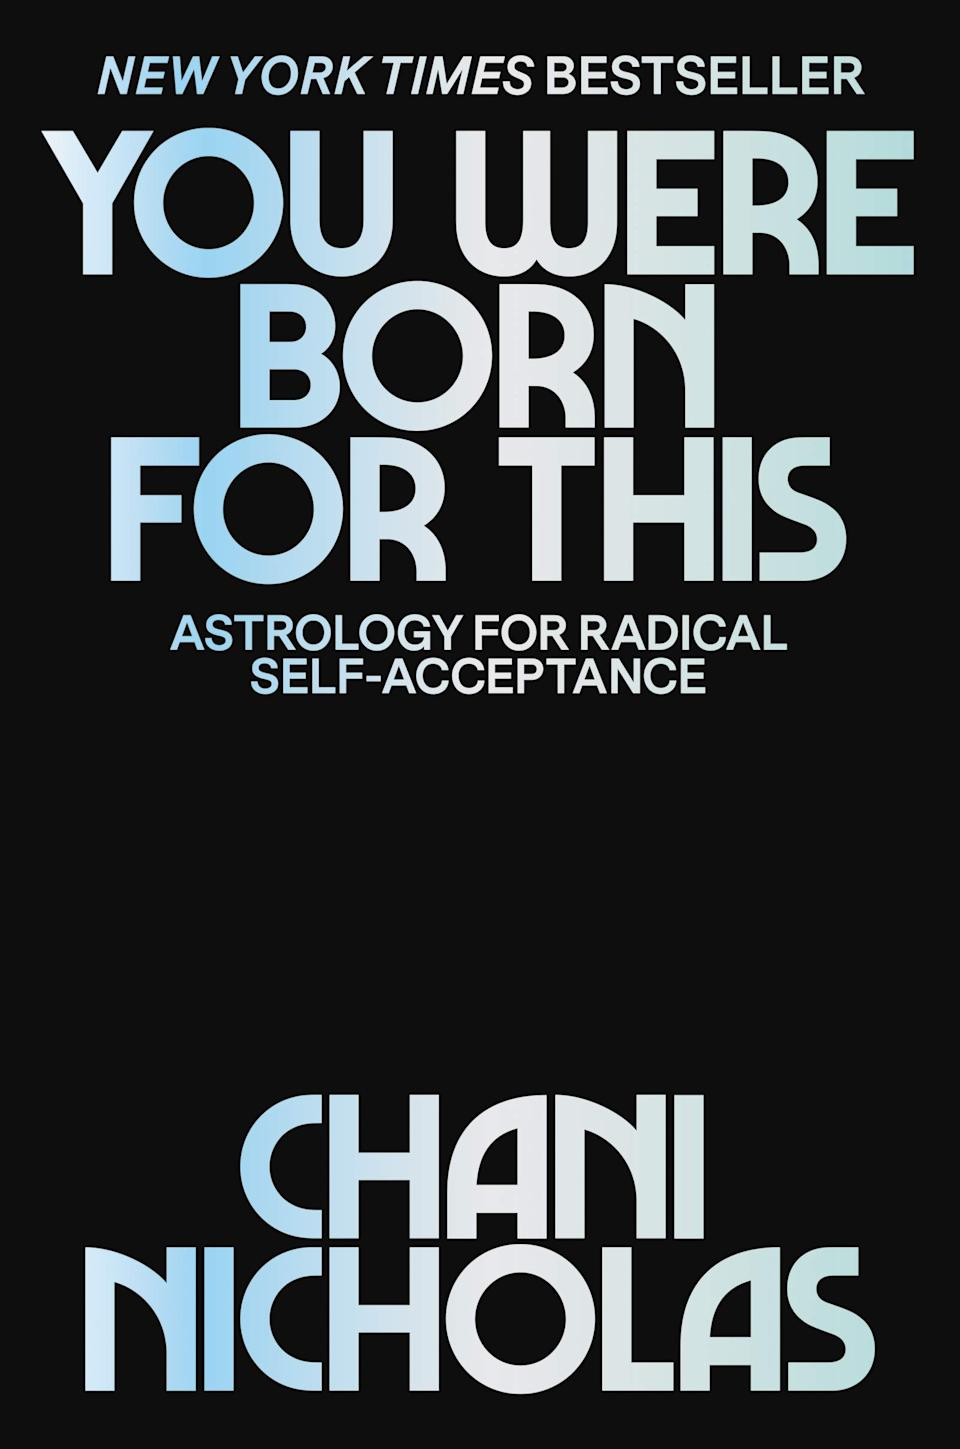 You Were Born for This: Astrology for Radical Self-Acceptance (Photo via Amazon)